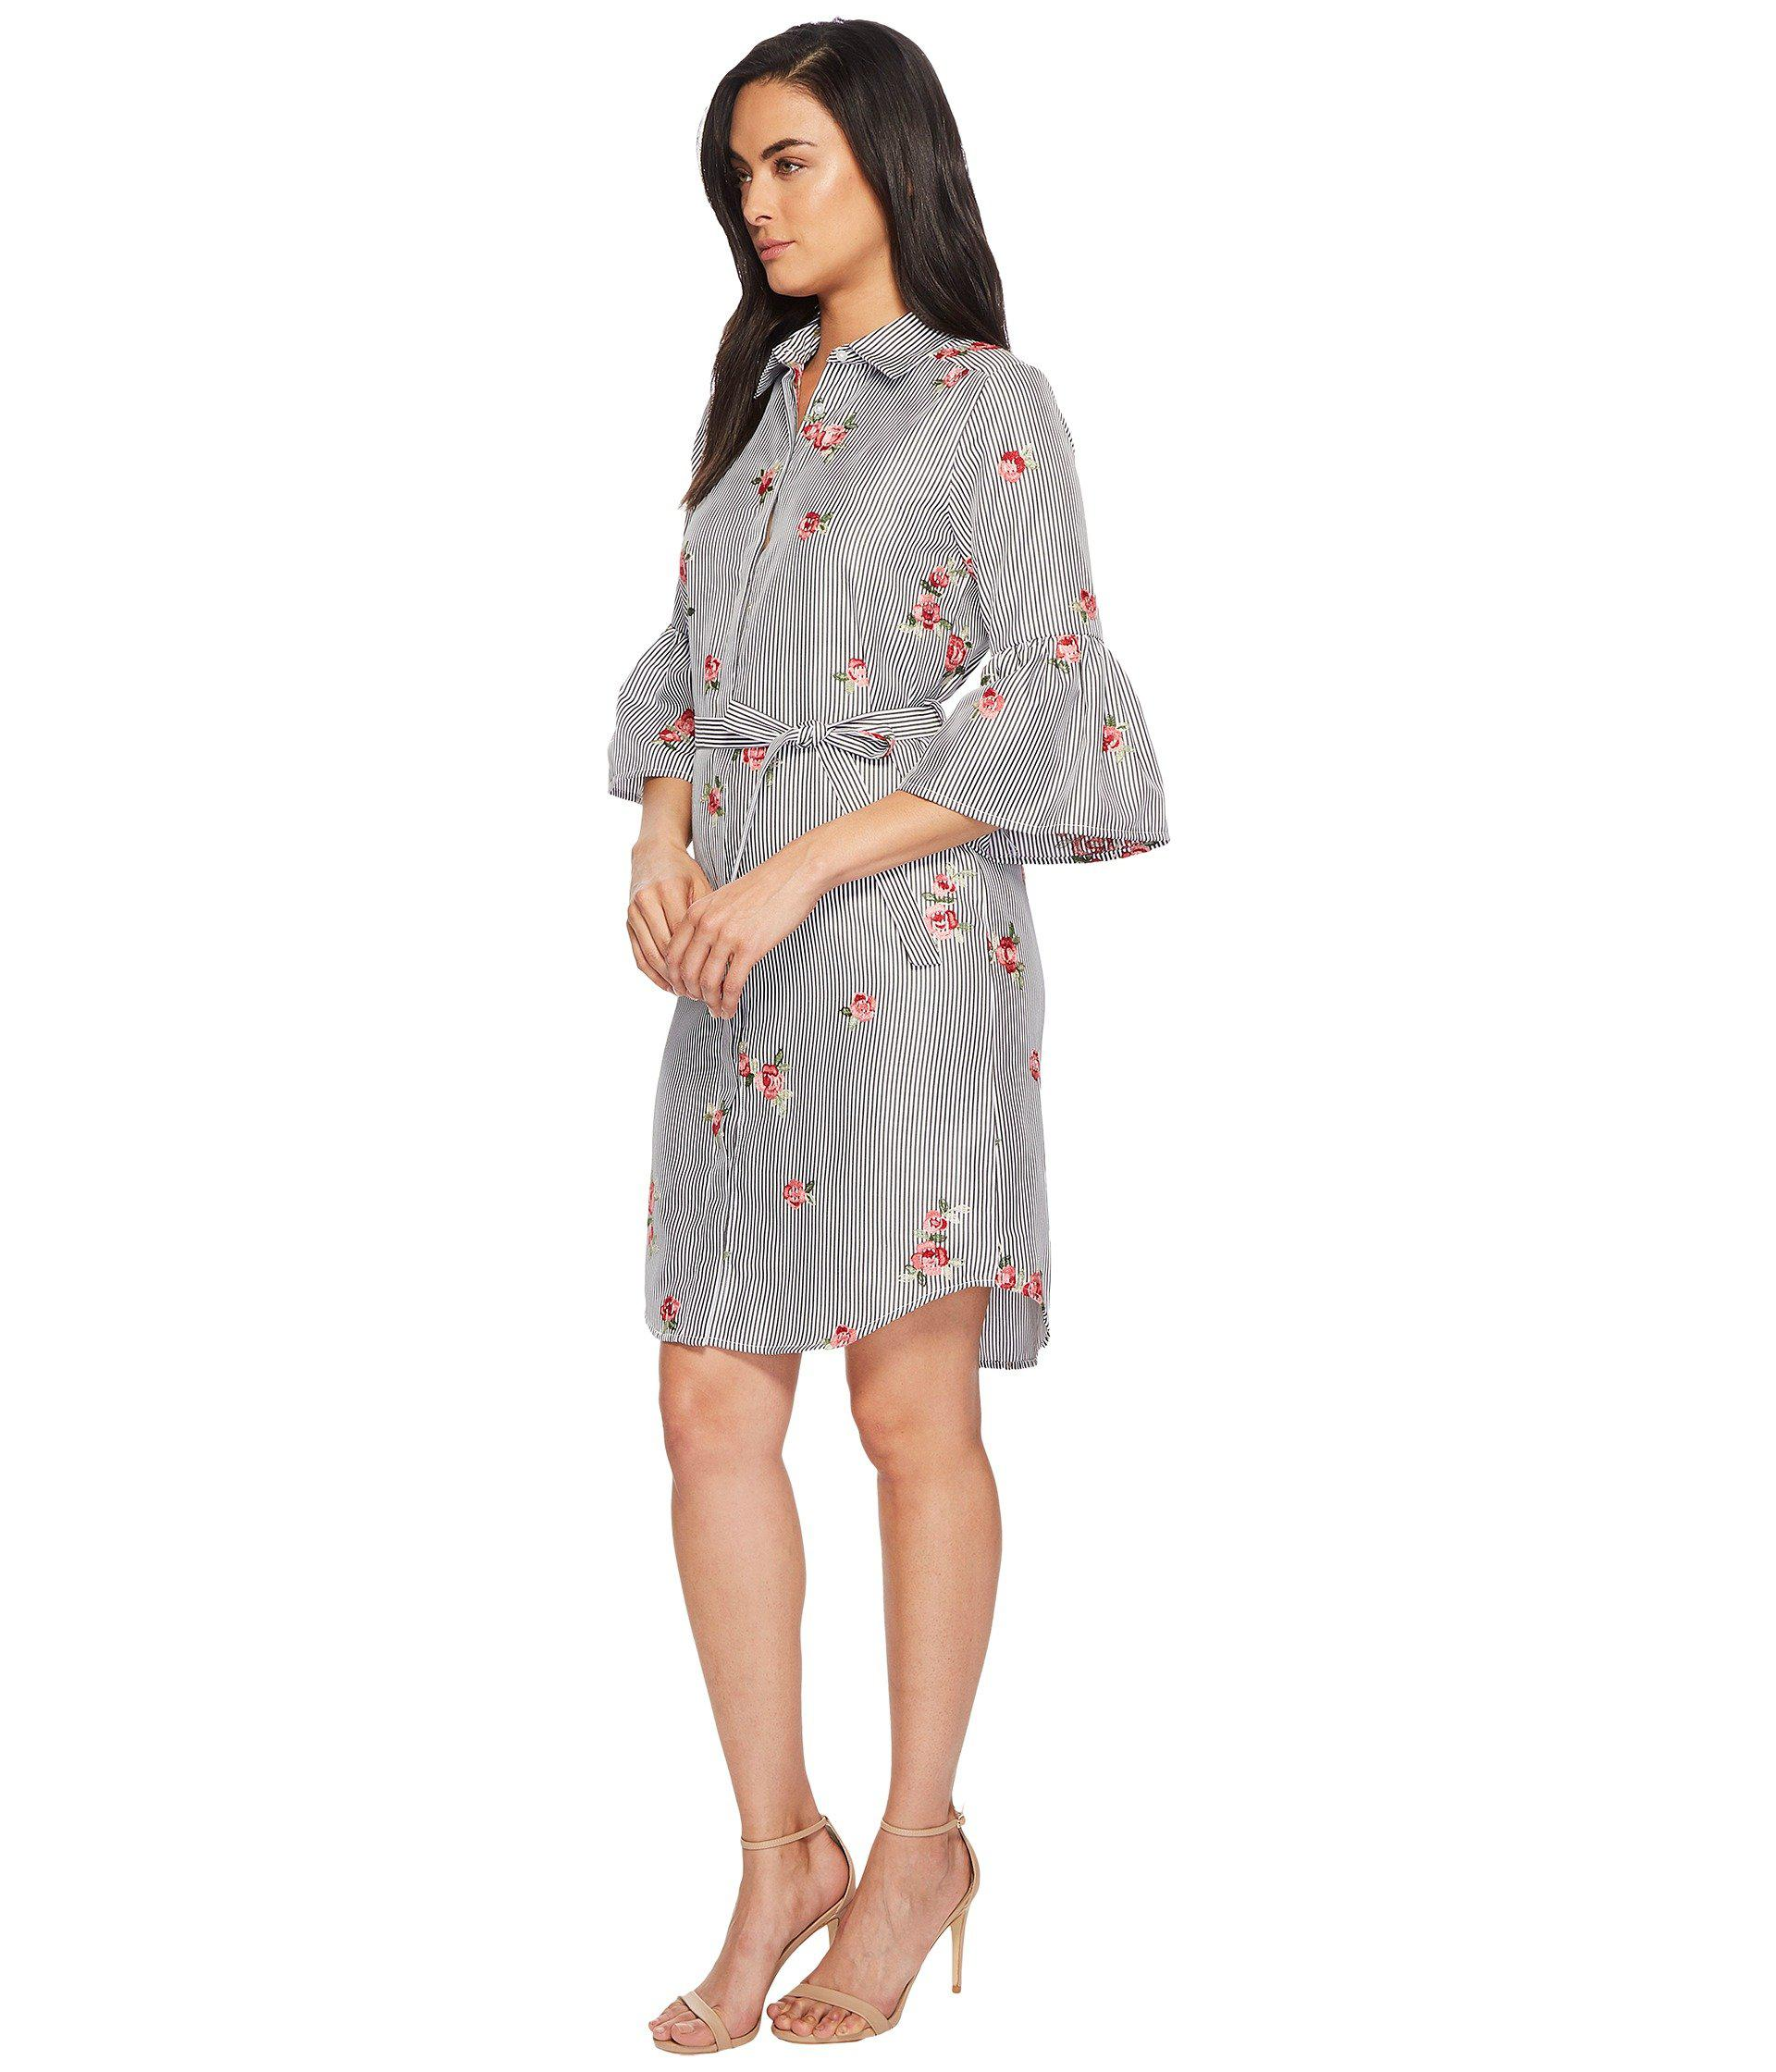 dc2a2435 Lyst - Calvin Klein Floral Embroidered Bell Sleeve Cd8g18gx - Save 26%